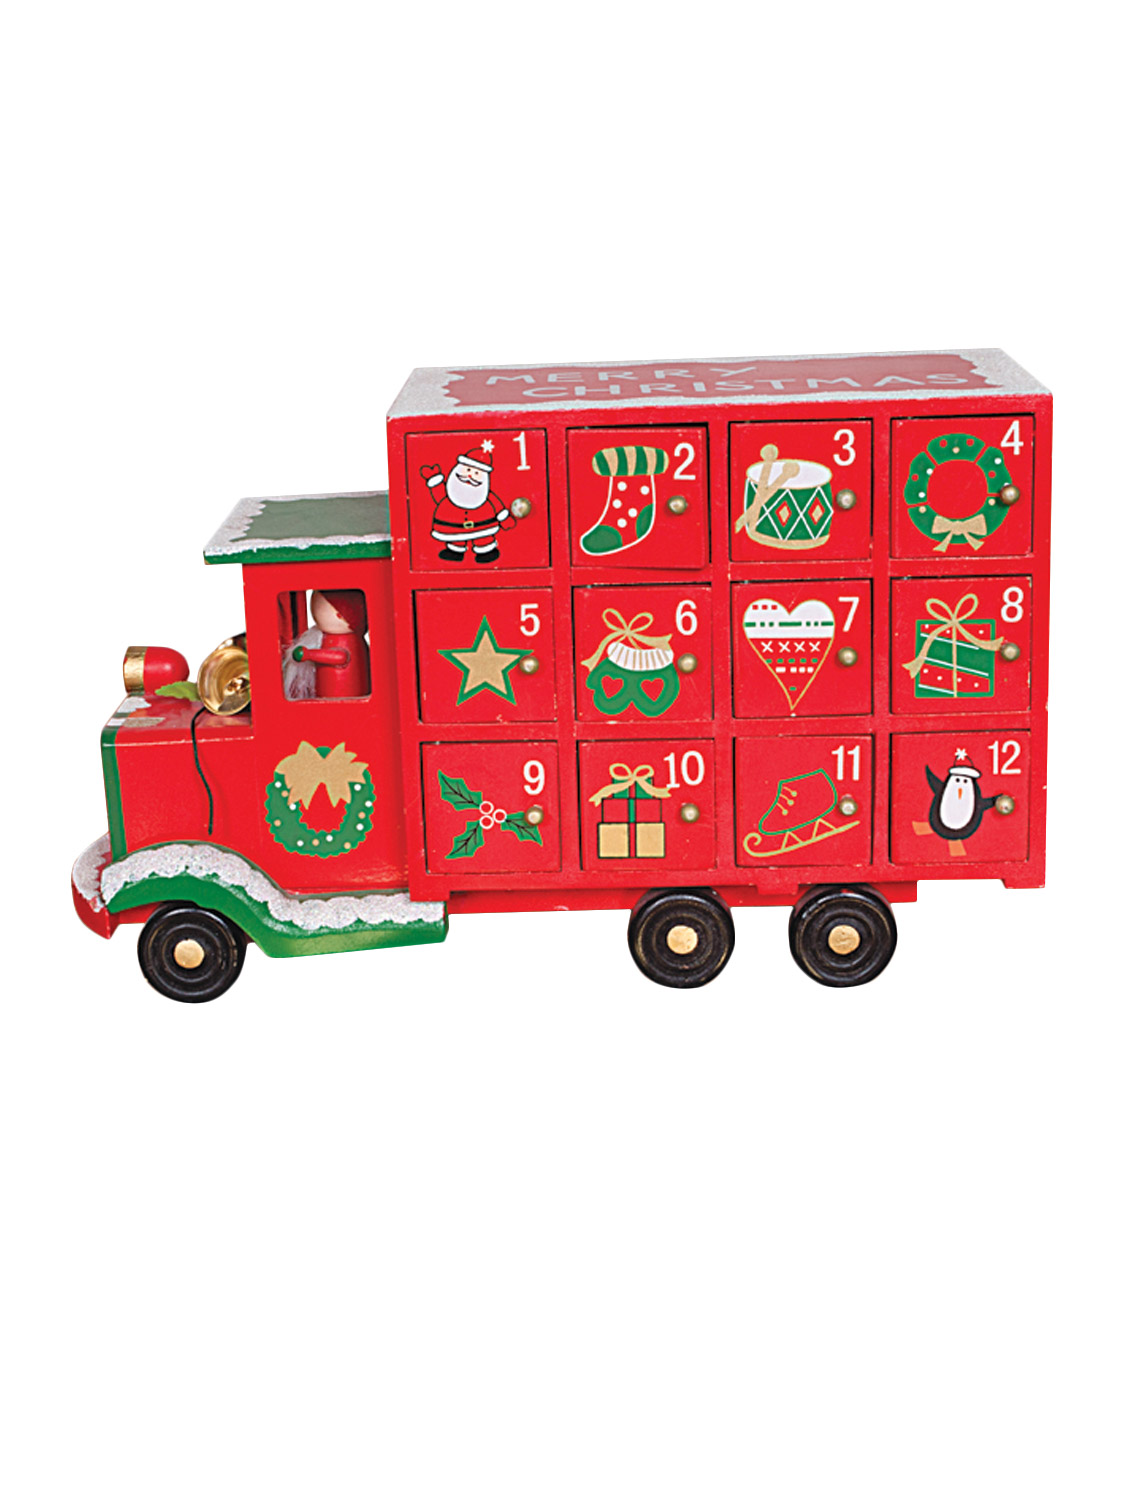 ... & Occasions > Christmas Decorations & Trees > Advent Calendars